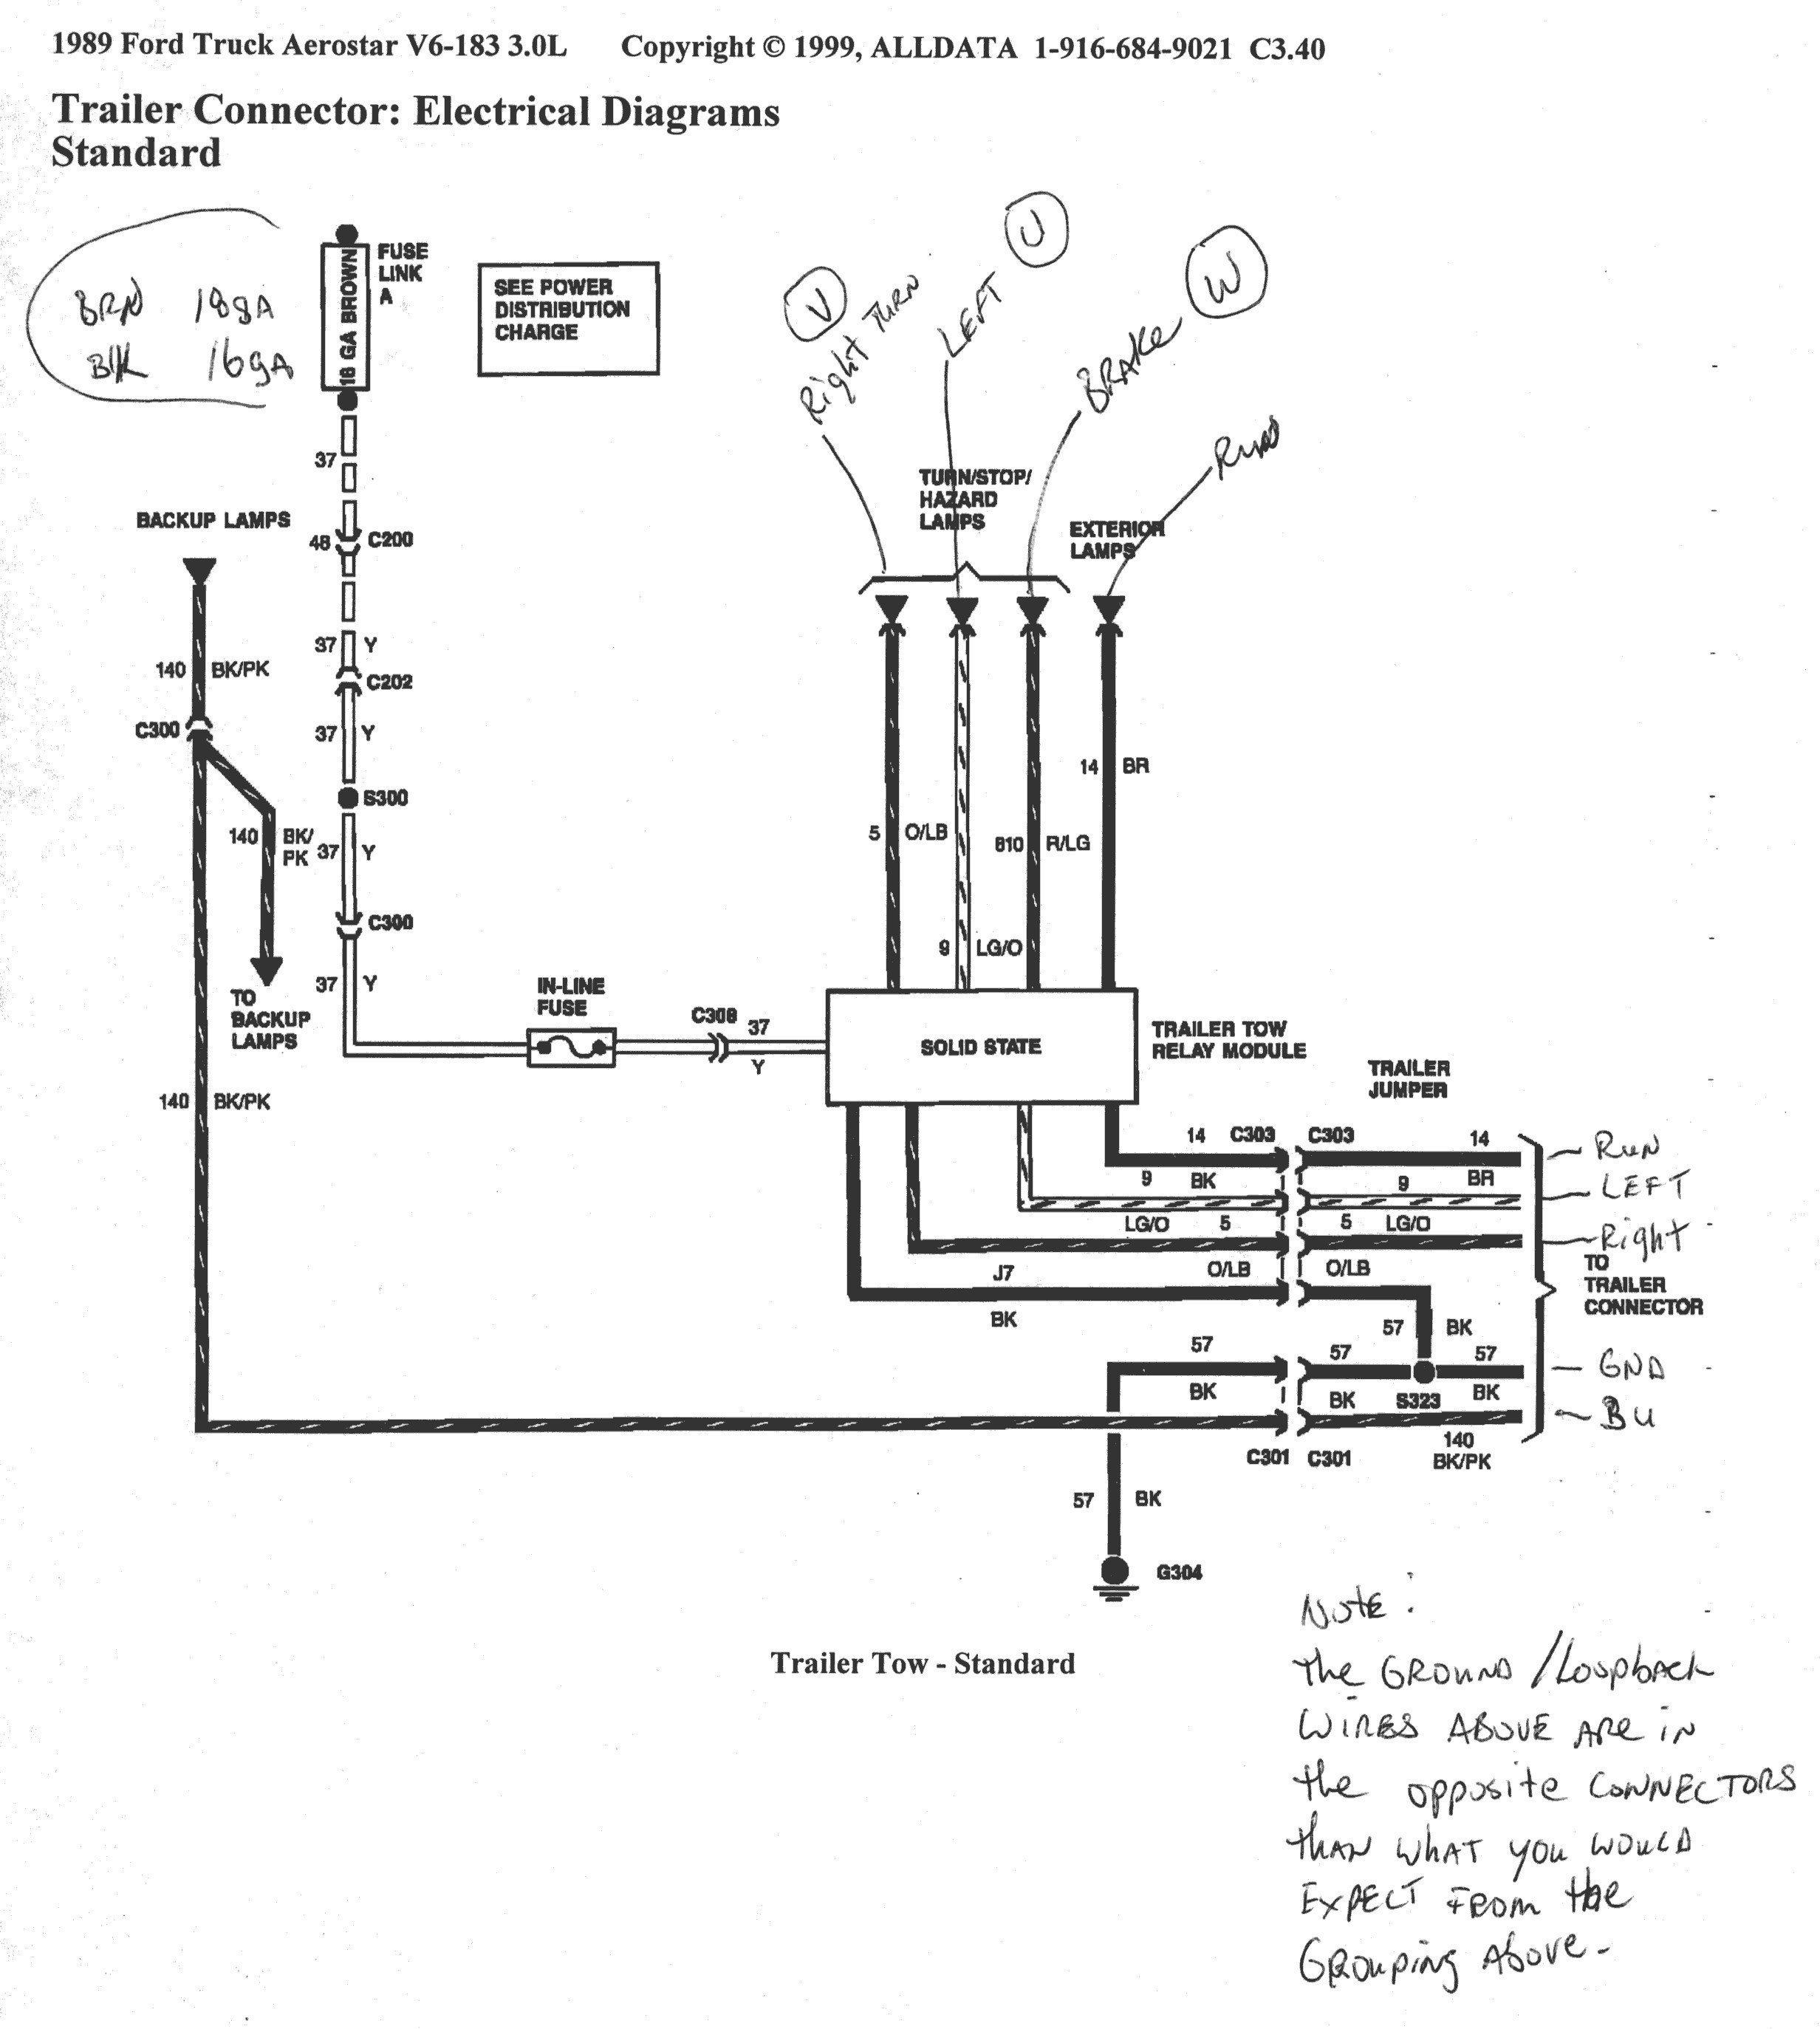 Ford 7 Pin Trailer Plug Wiring Diagram - Shahsramblings - Ford 7 Pin Trailer Connector Wiring Diagram